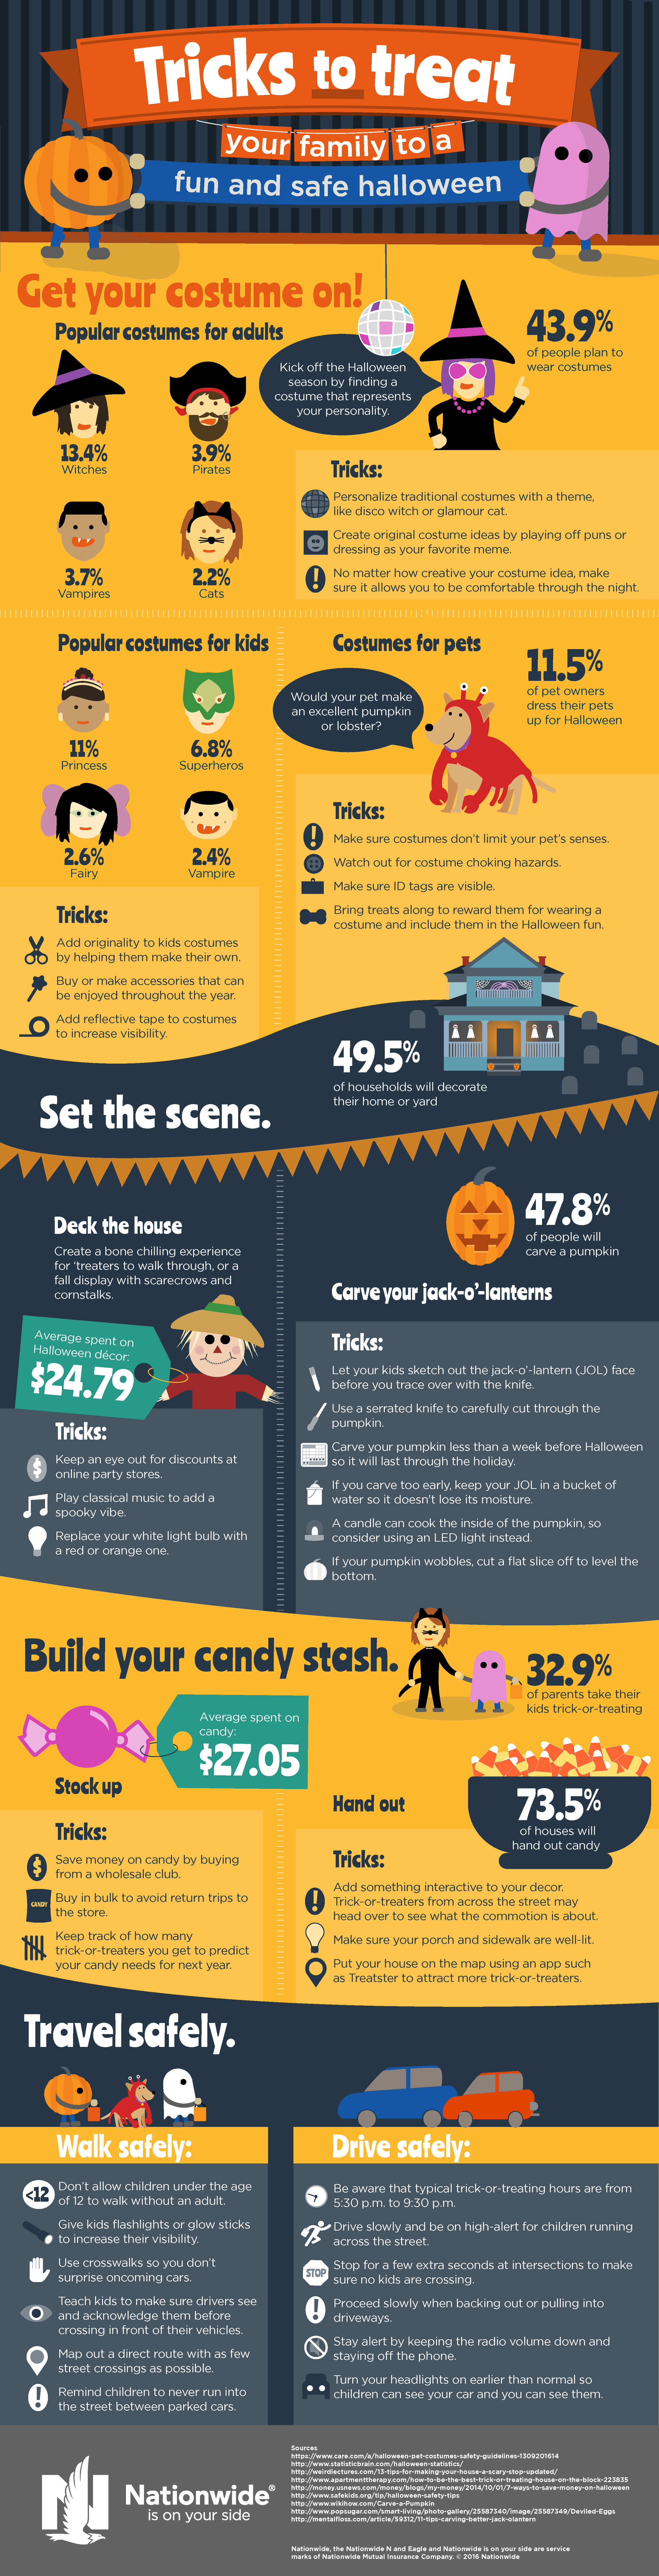 Trick or Treating Tips [Infographic]